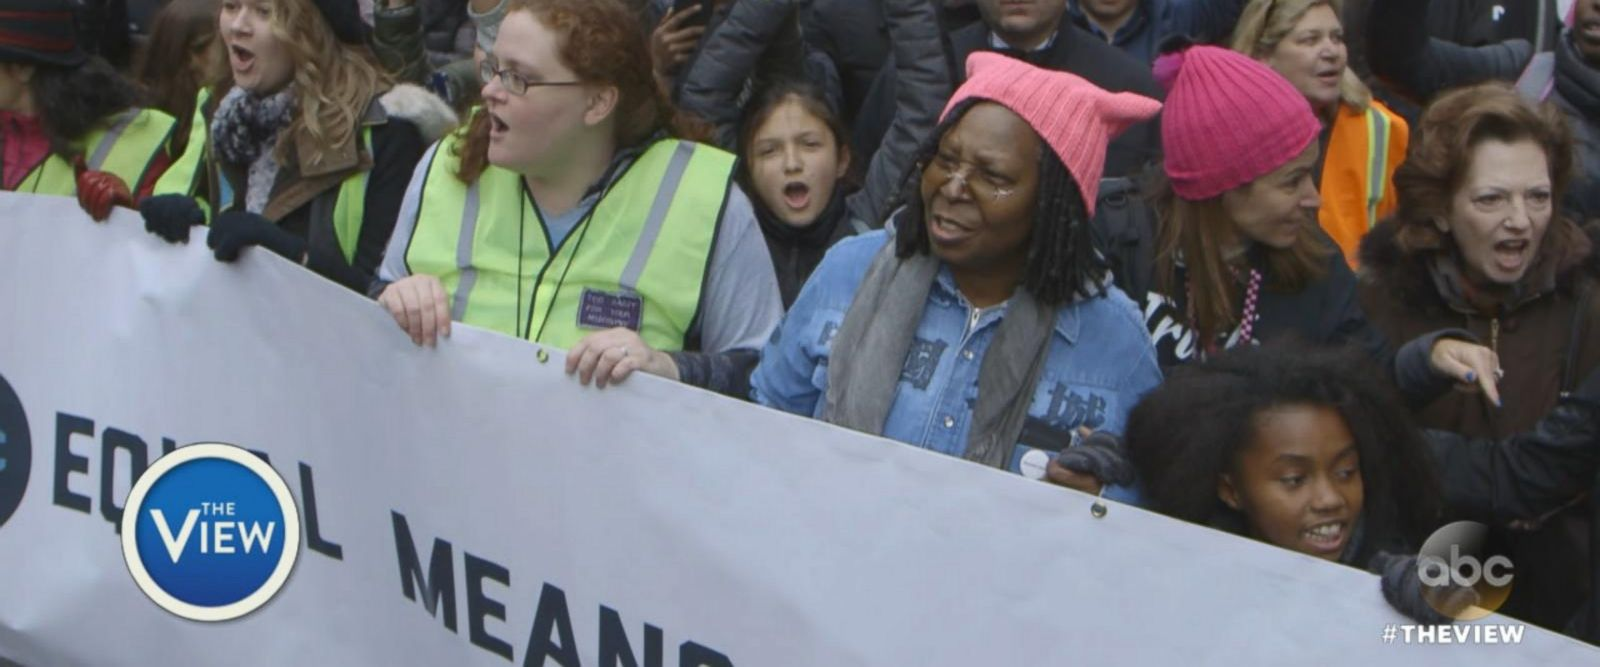 VIDEO: Whoopi Goldberg Discusses Her Experience at NYC Women's March